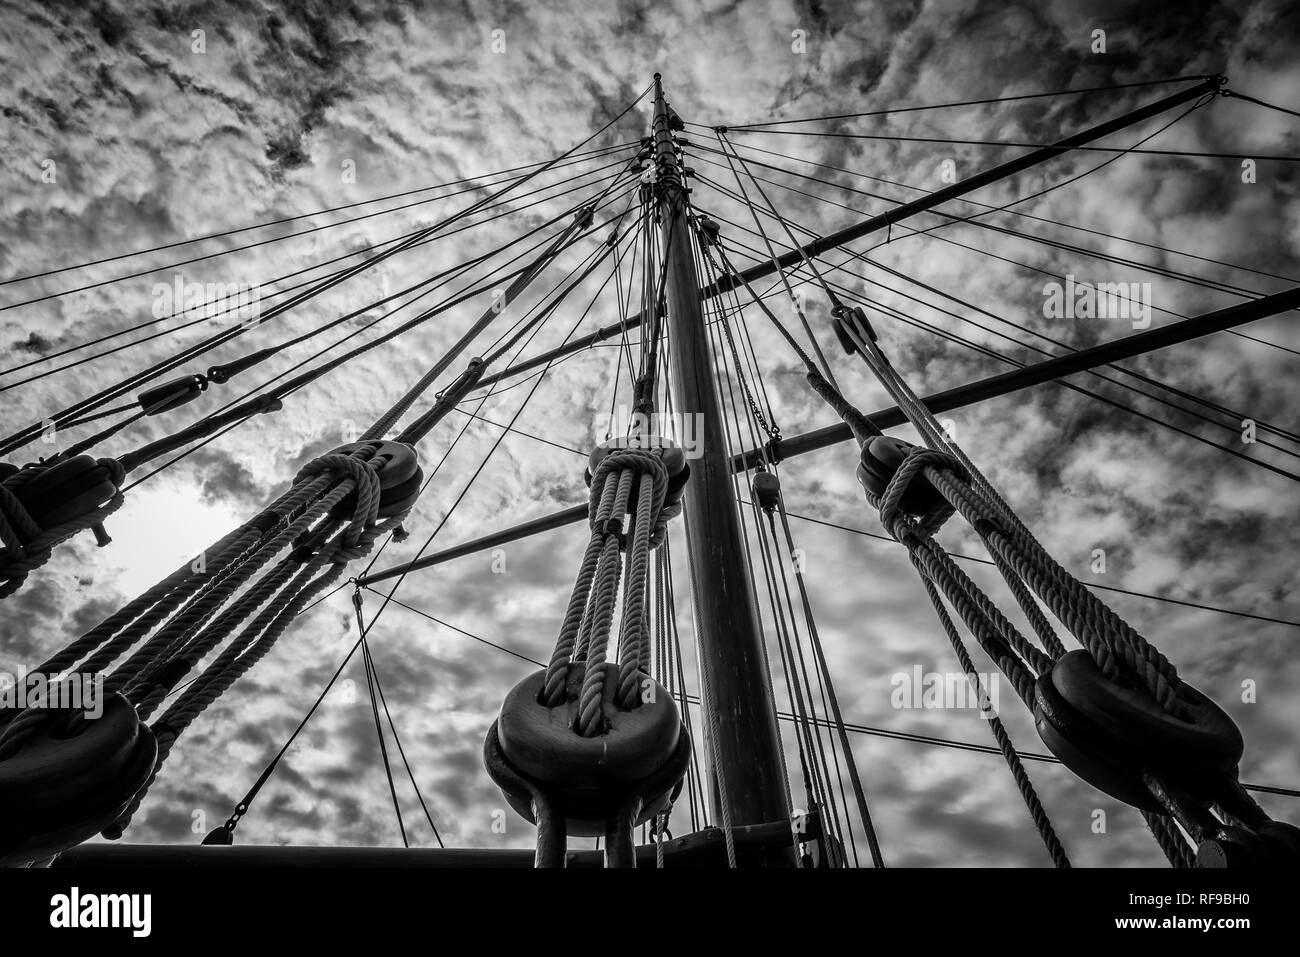 Main-mast Rigging of old sailing cargo ship, Douarnenez Harbour - Stock Image